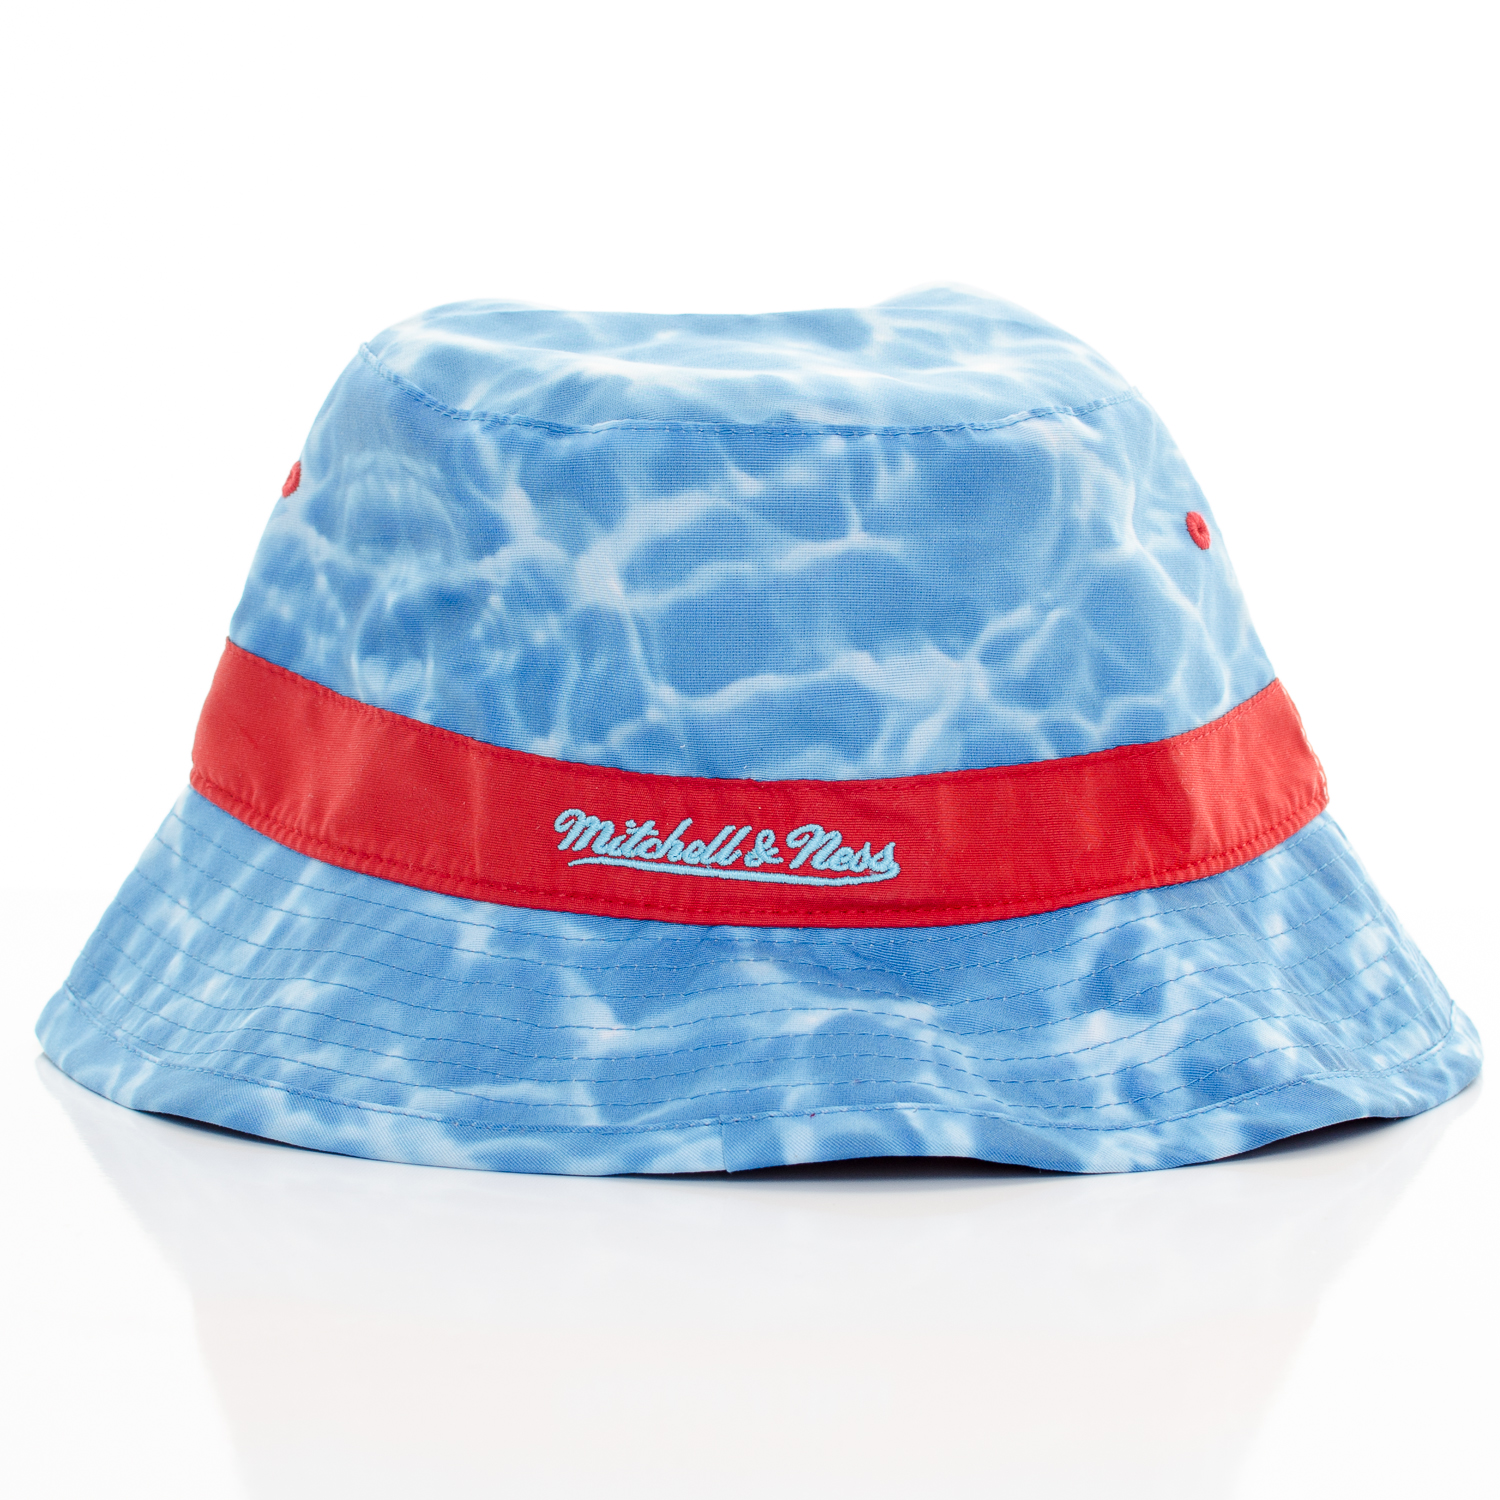 Klobúk Mitchell & Ness Bucket Blue L/XL